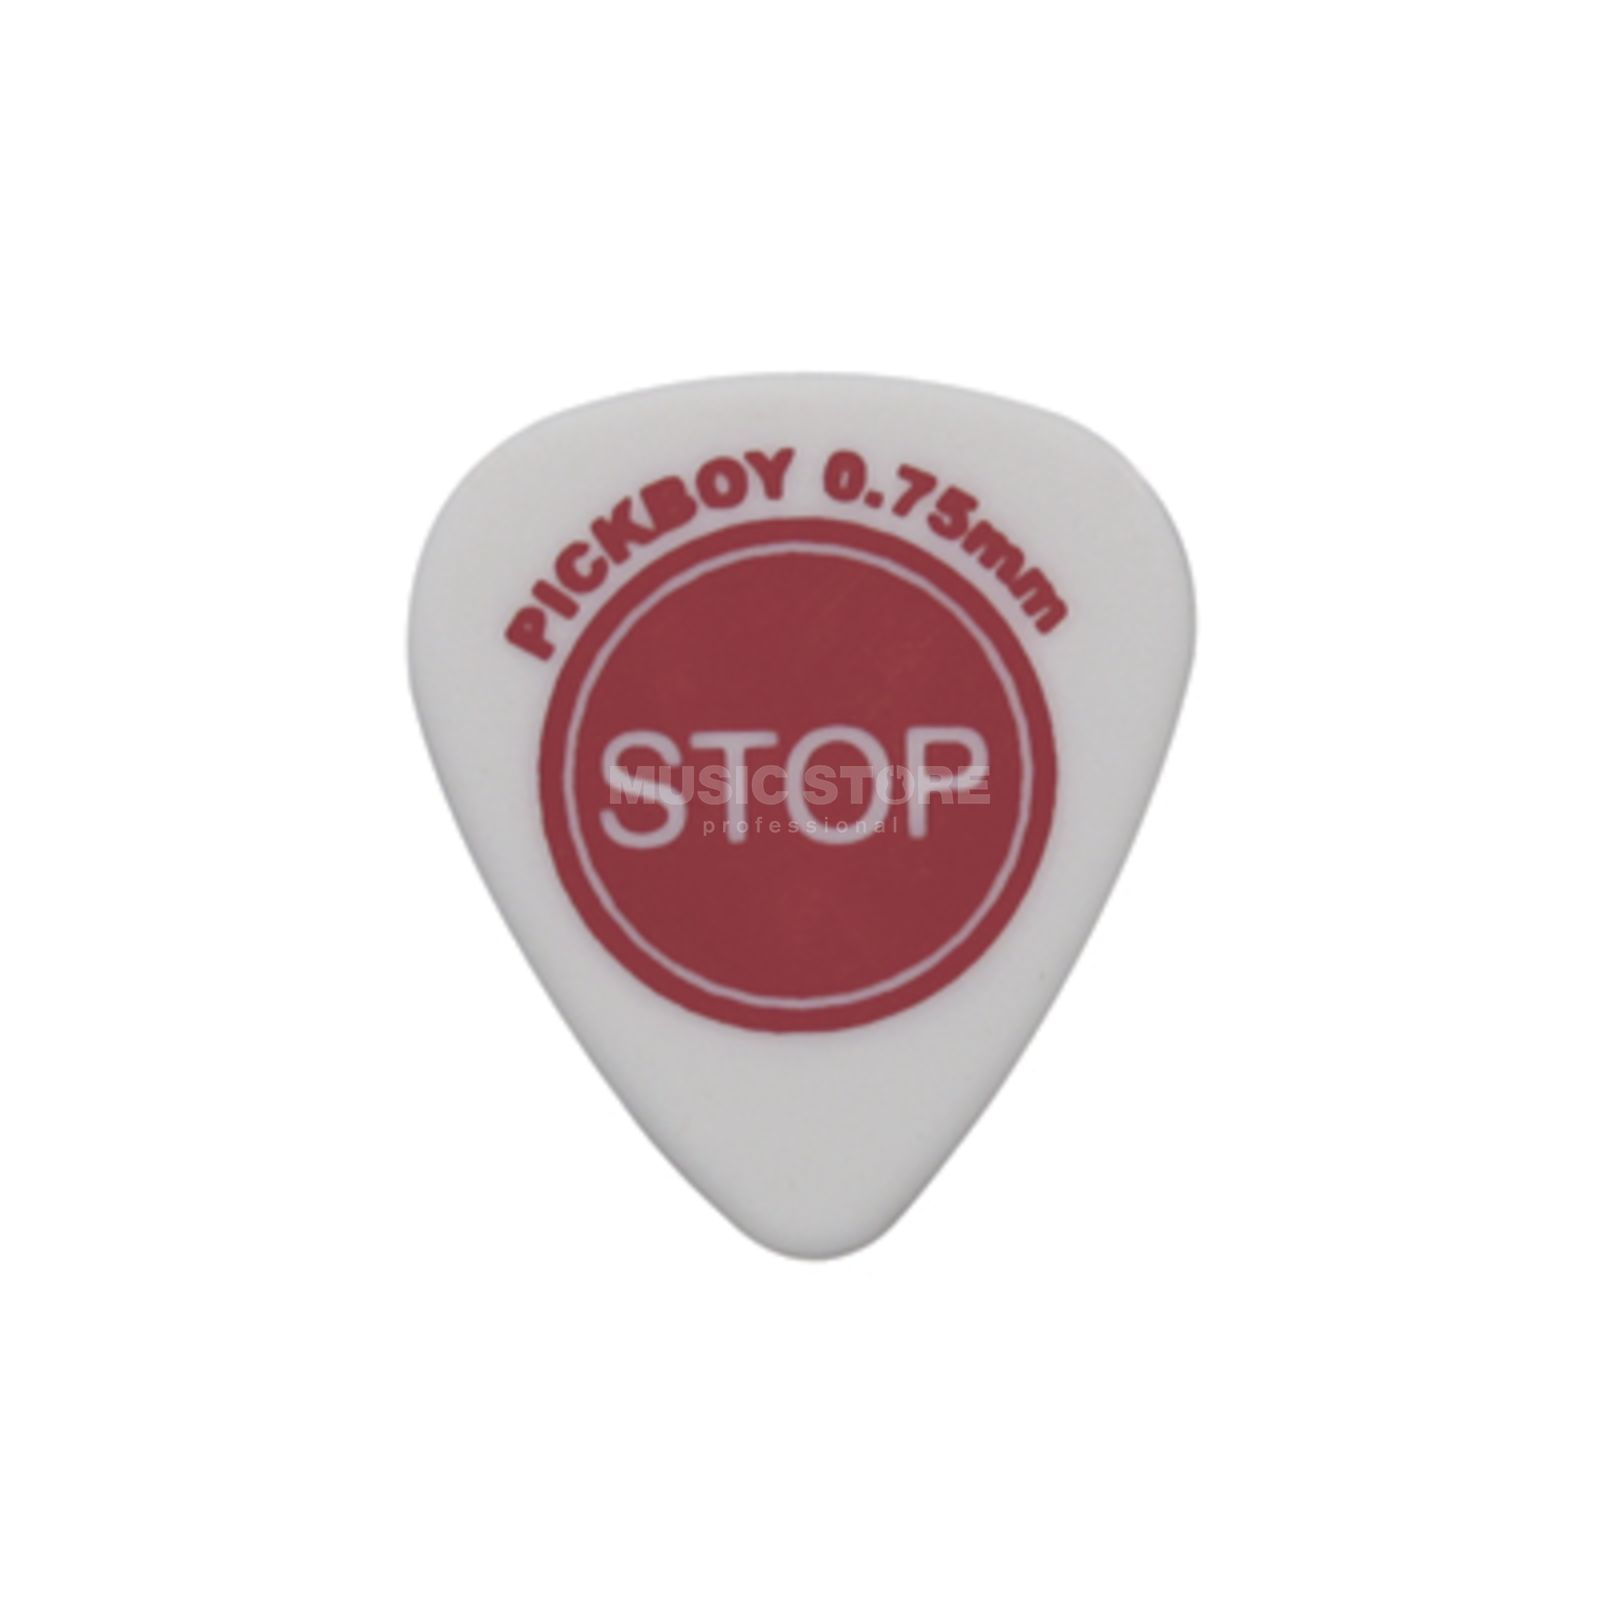 Pickboy Plektrum Stop 0,75 mm 12er-Set, Celtex Picks Produktbillede